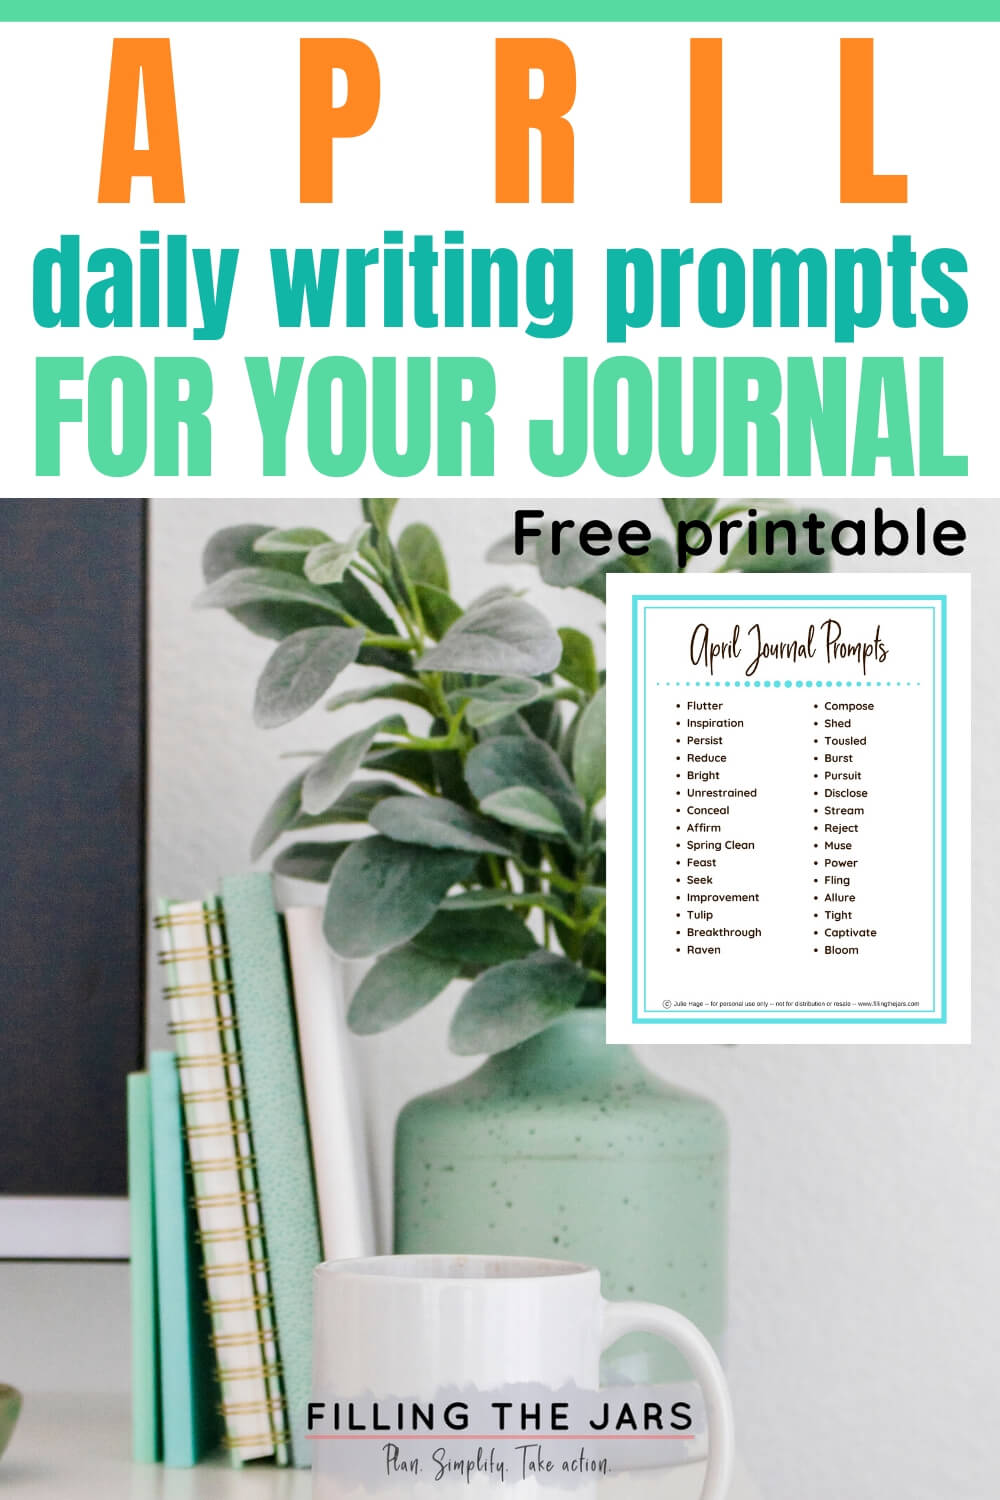 journals and plant and coffee mug on white desk against white background with text overlay and small image of april journal prompts